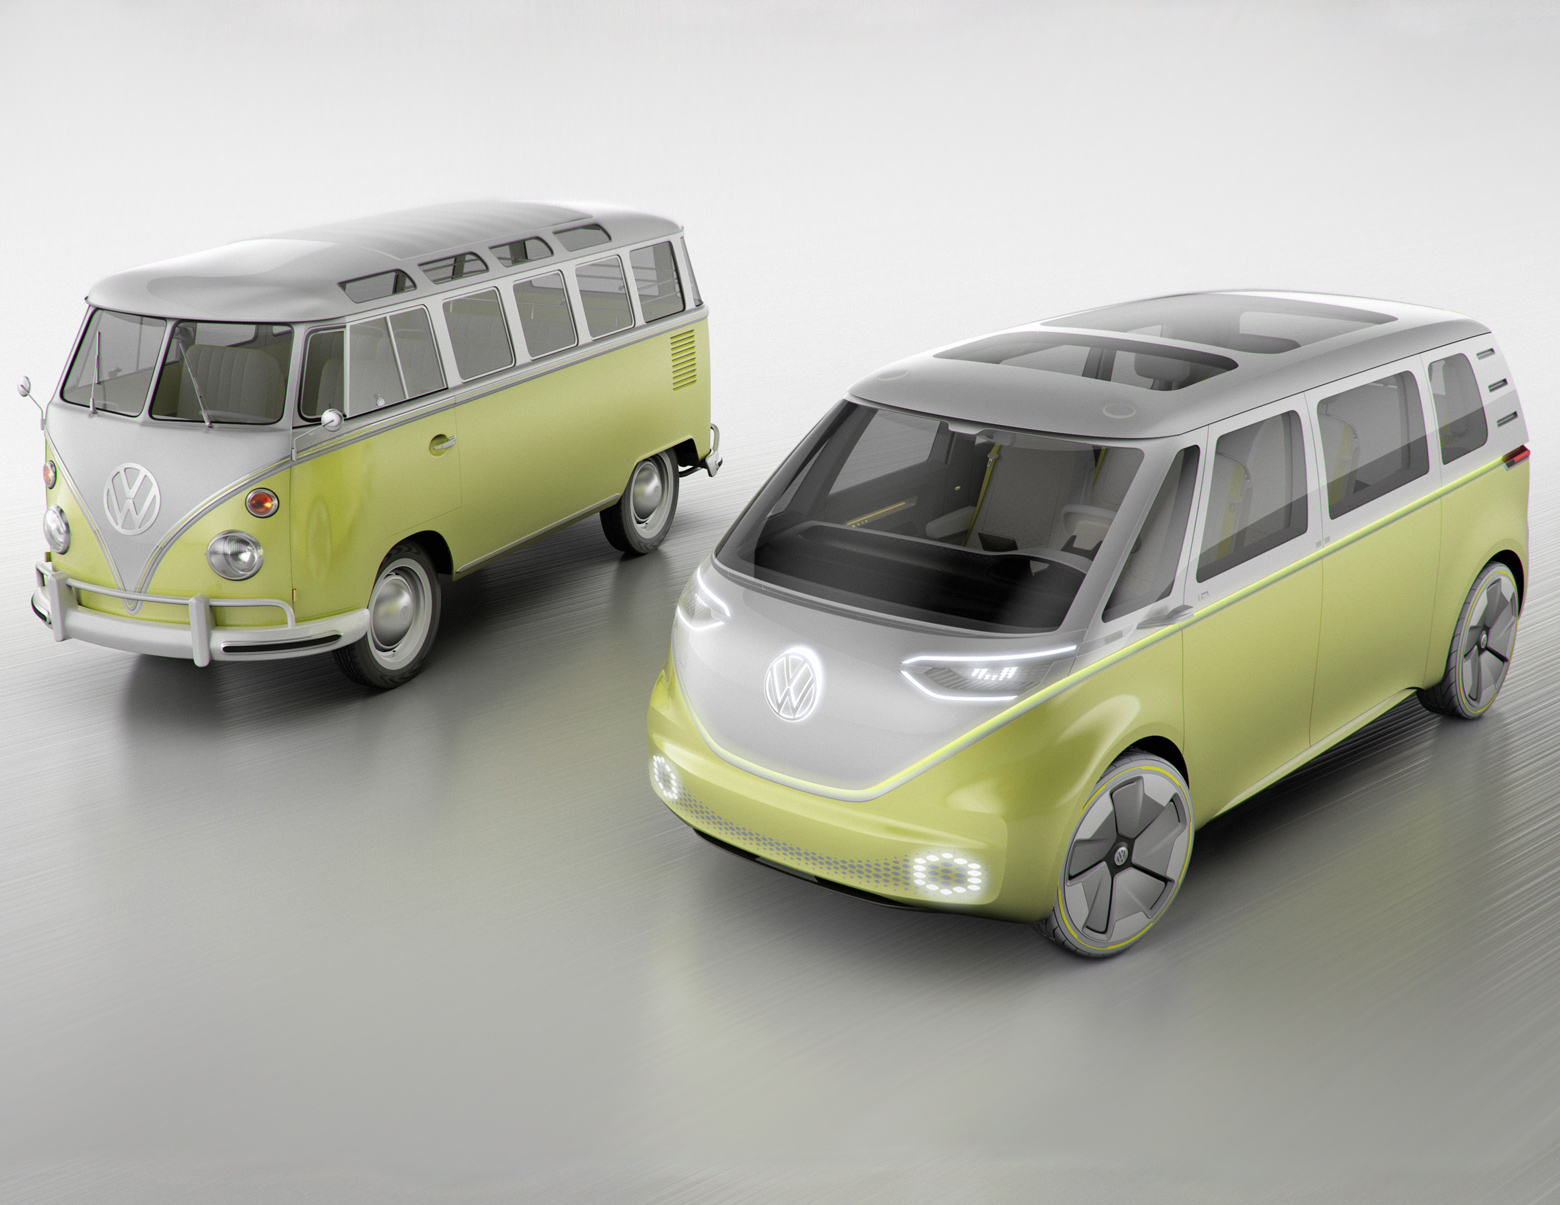 This Is What Volkswagen's Electric Microbus Could Look Like